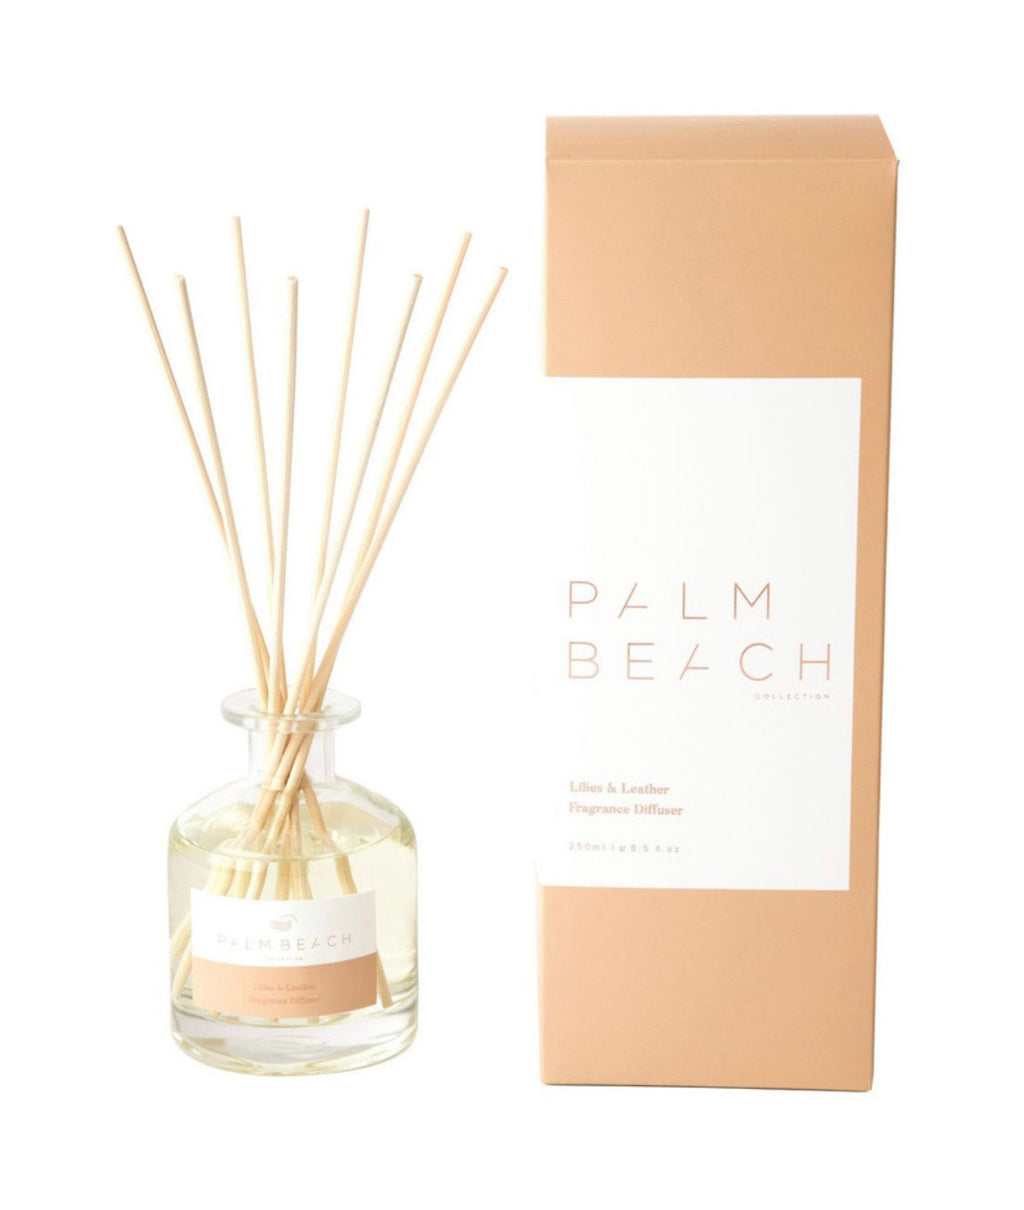 Palm Beach Lillies & Leather Diffuser